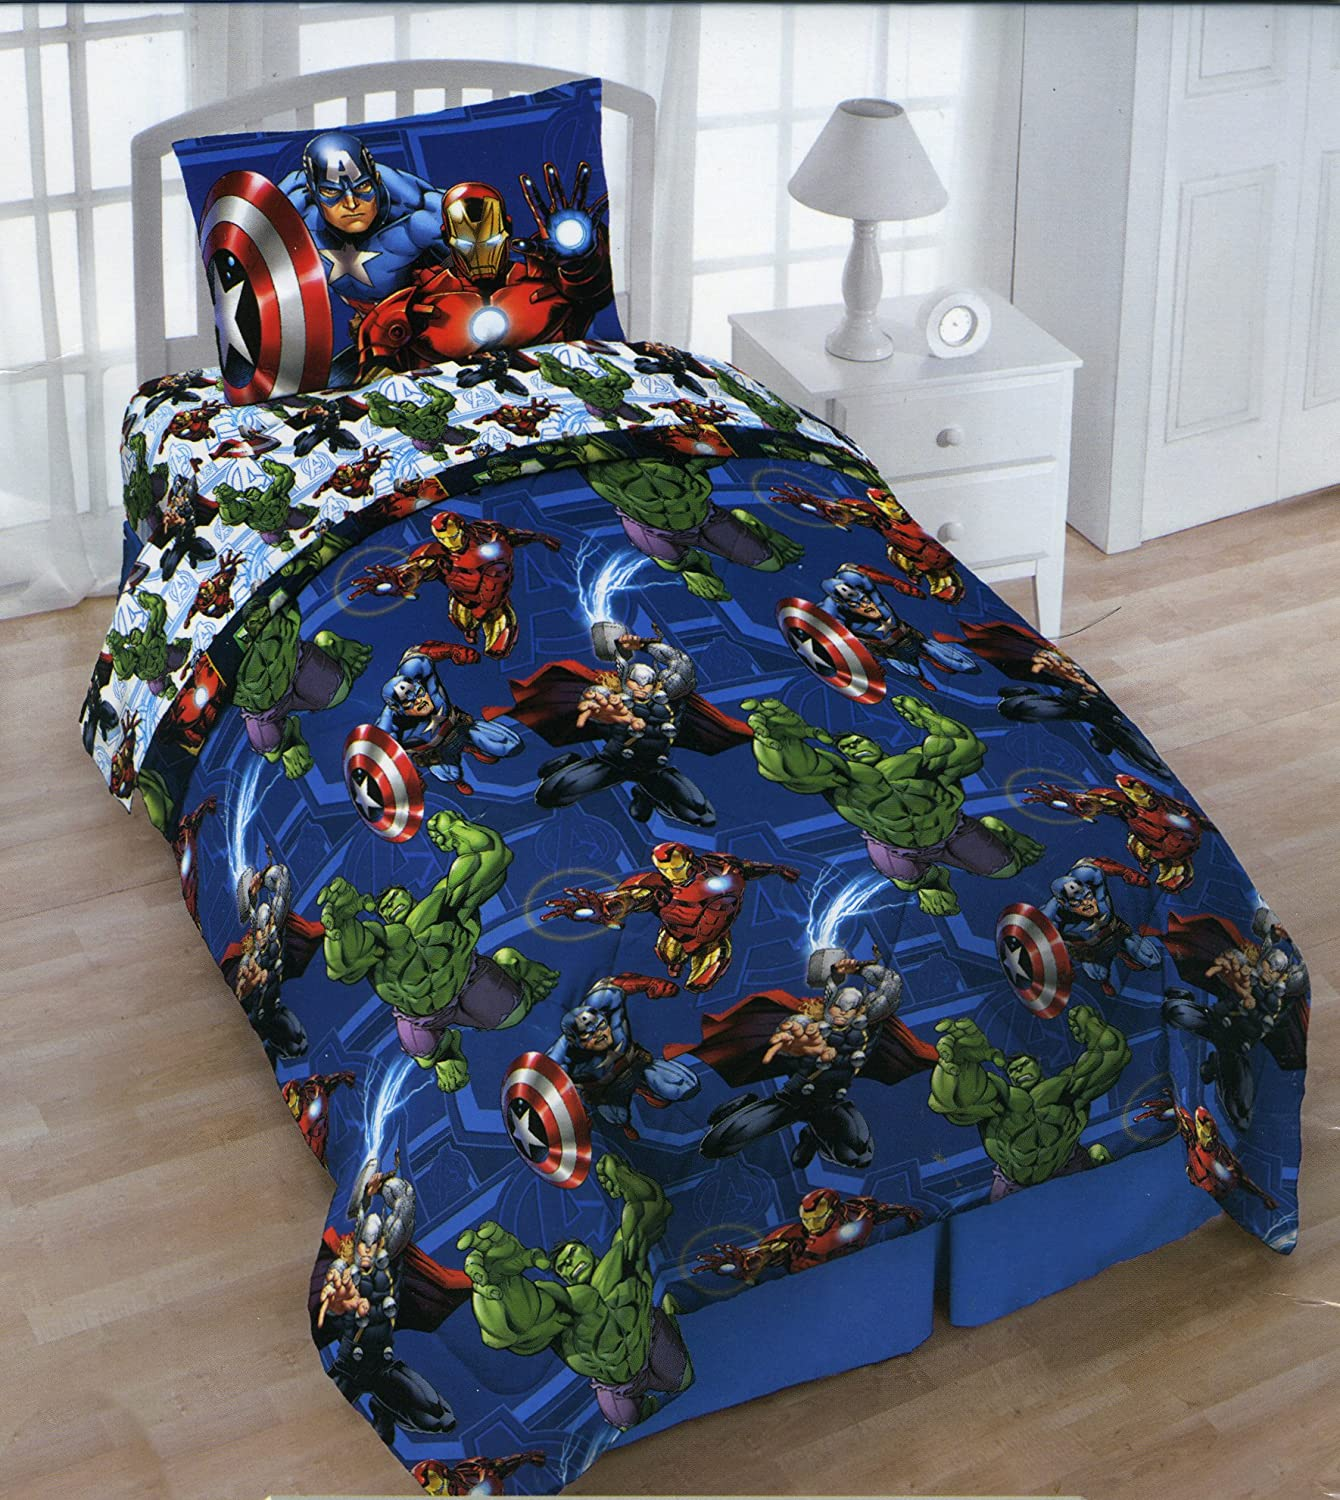 Marvel Avengers Twin 4 Piece Bedding Set with Tote - Reversible Comforter